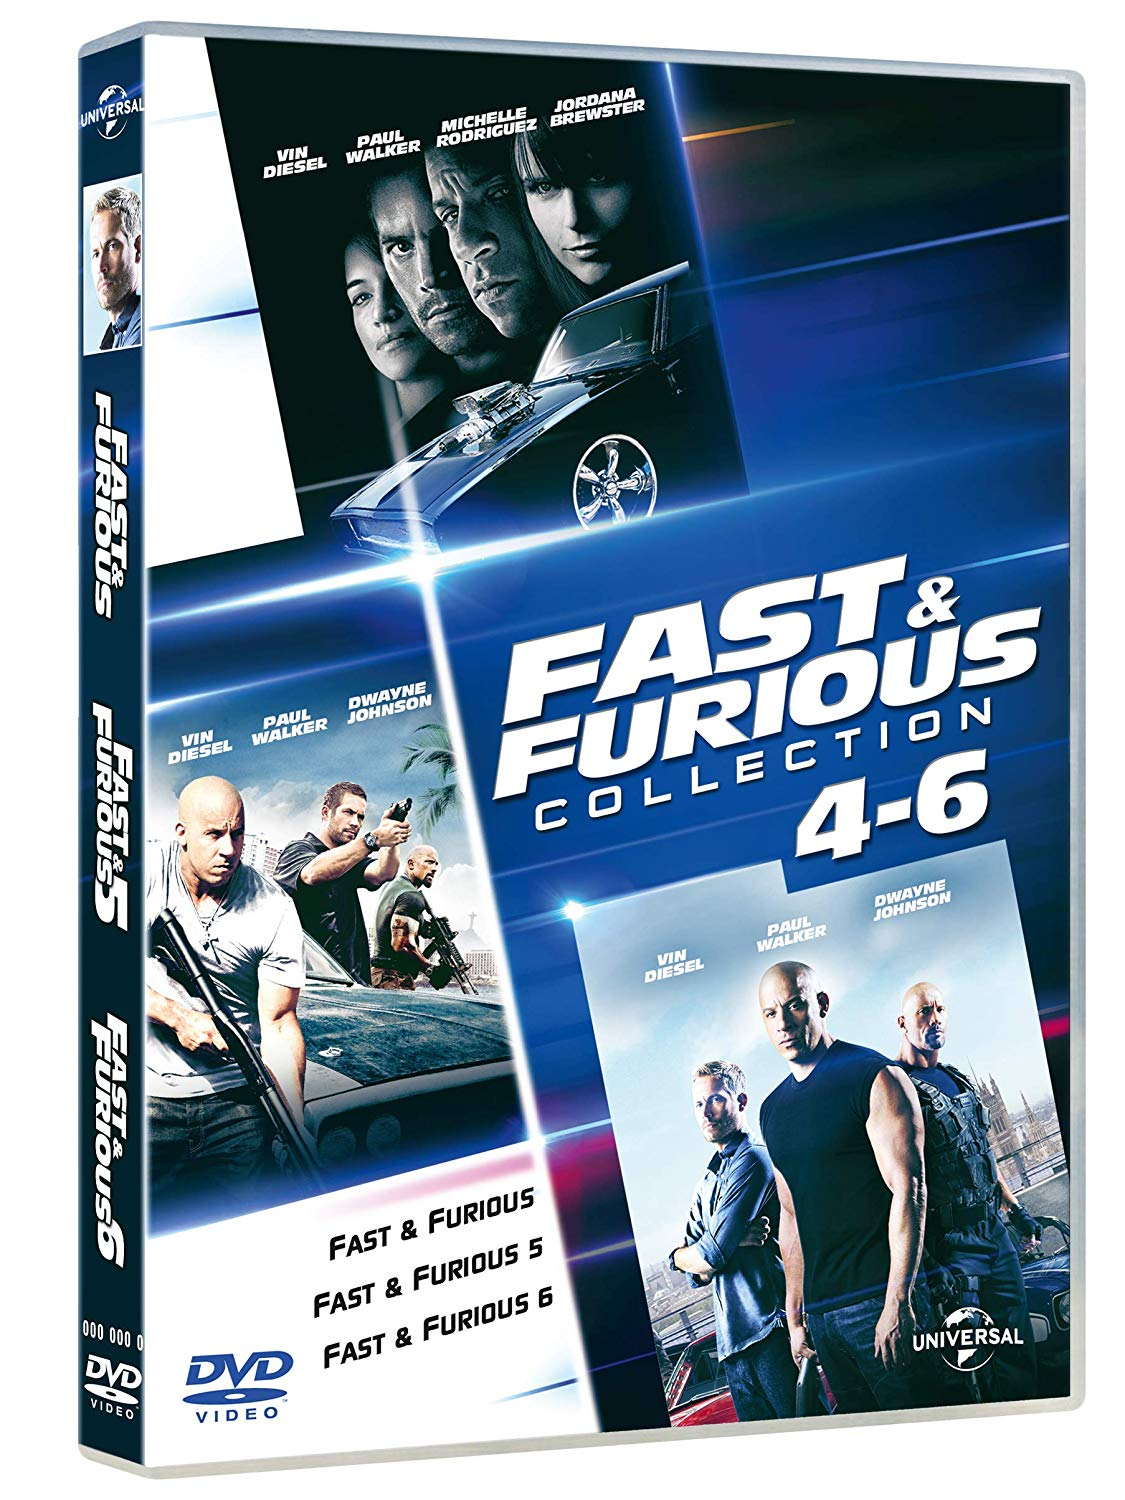 COF.FAST & FURIOUS FAMILY COLLECTION (3 DVD) (DVD)